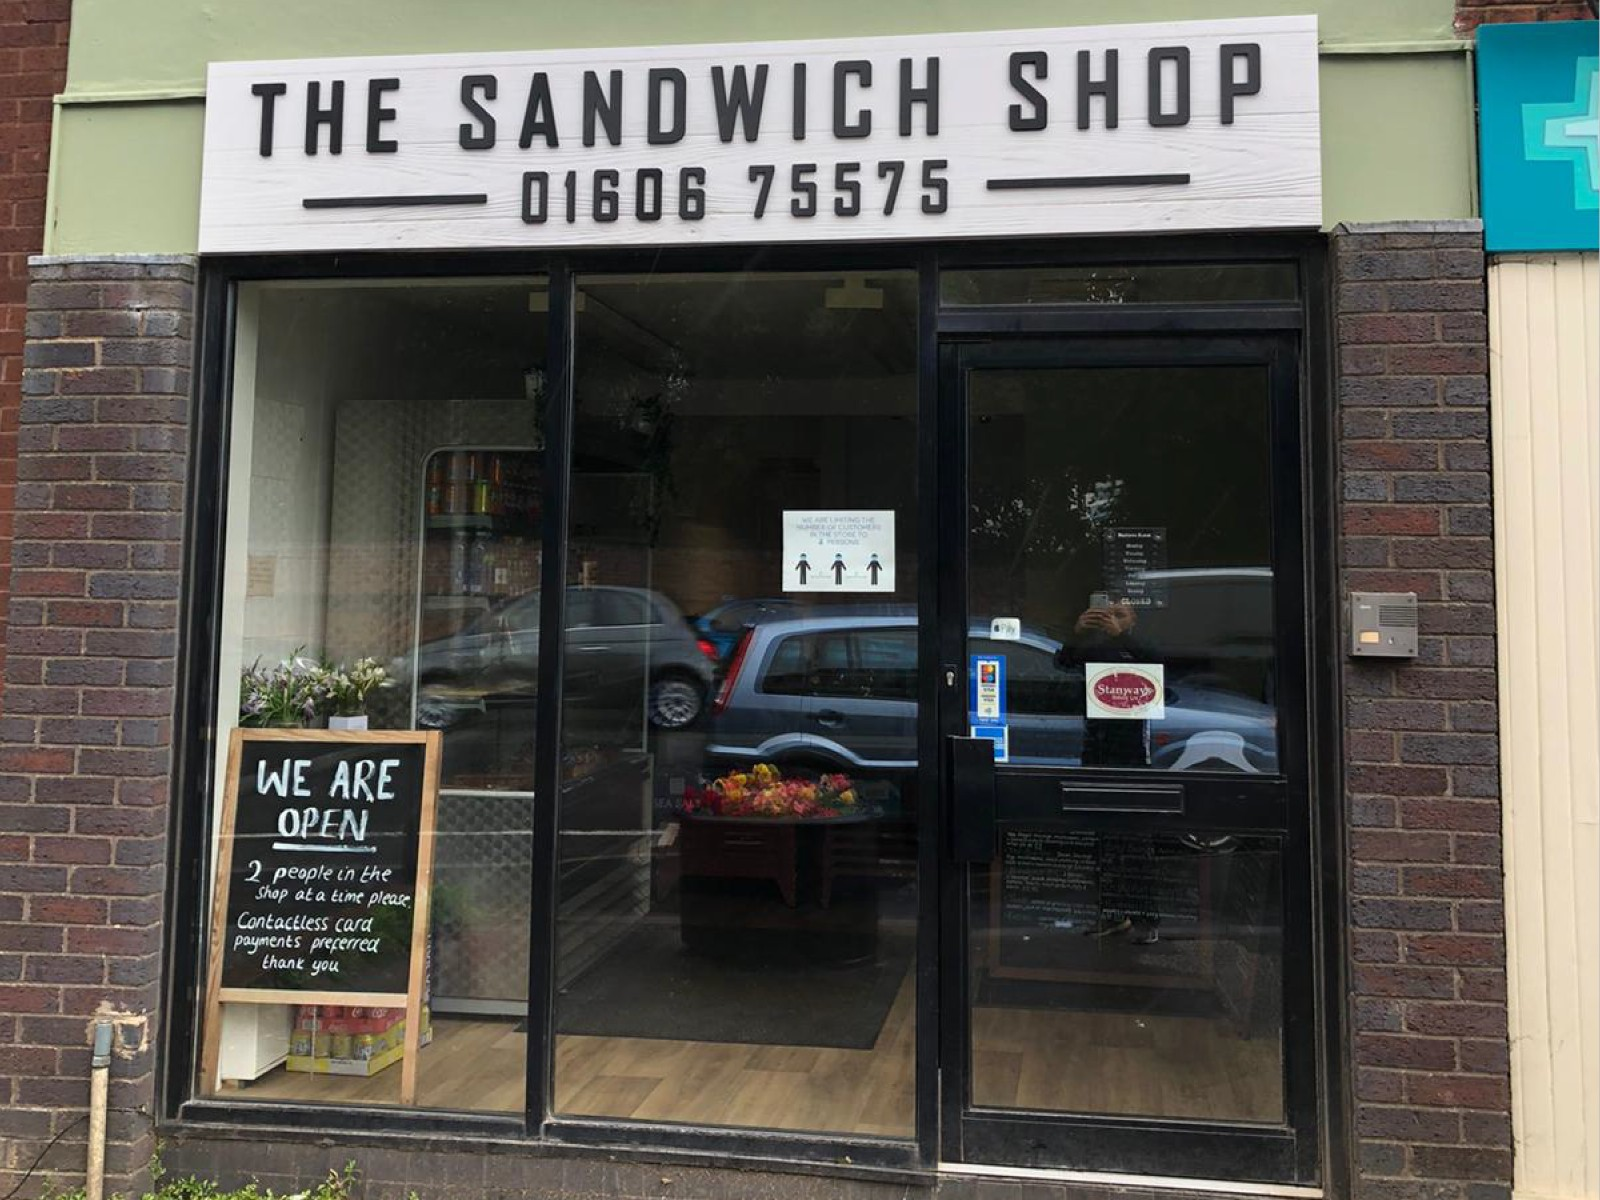 The-Sandwich-Shop-Exterior-Signage